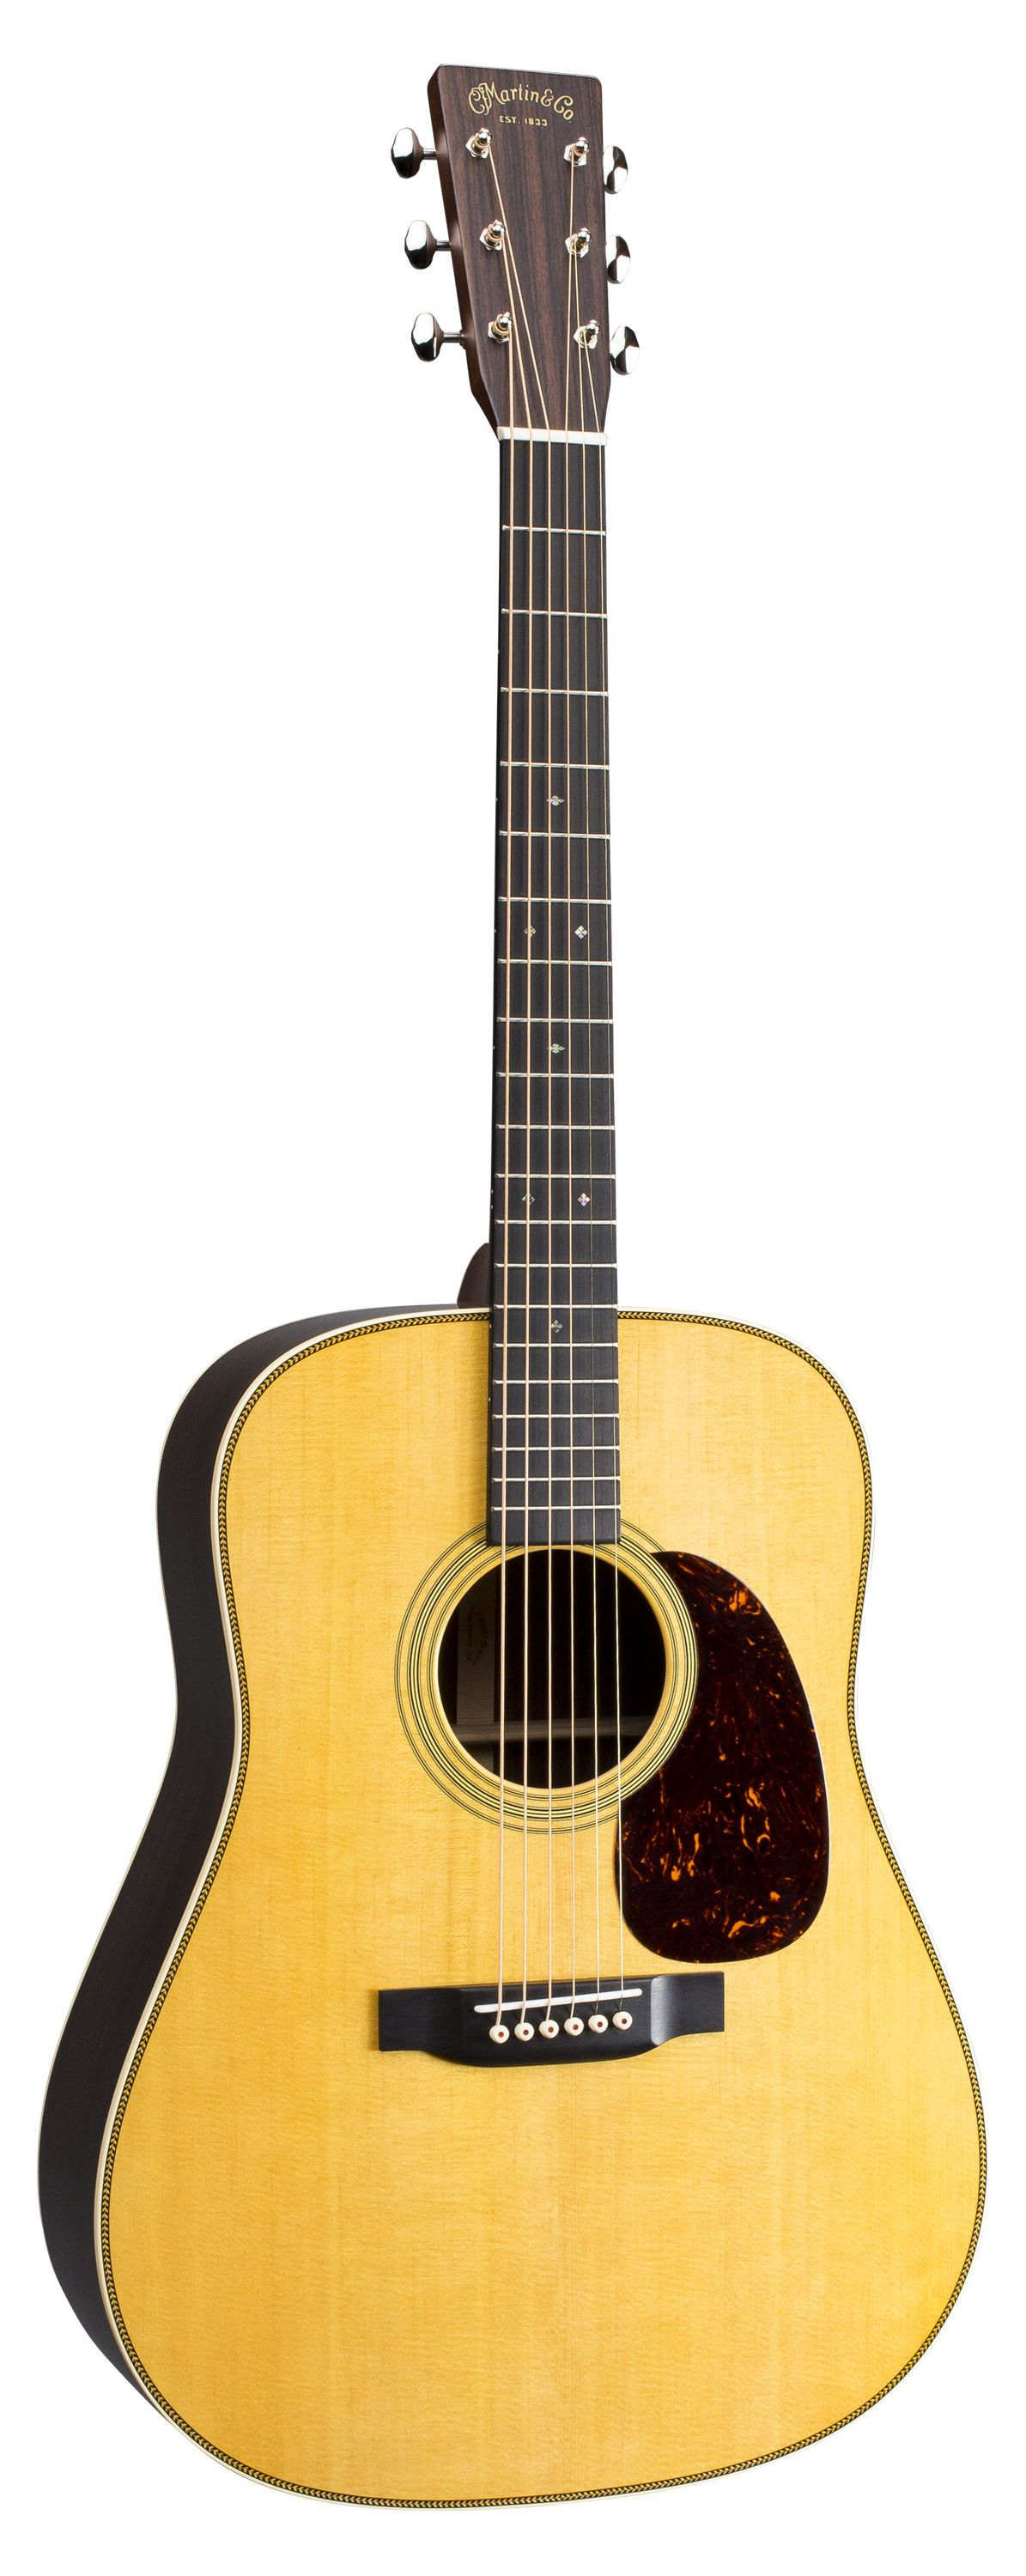 I Have Used This Martin Hd 28 Guitar For Hundreds Of Gigs Over The Years Classic Herringbone East Indian Rosewood Ebony Fing Guitar Acoustic Guitar Acoustic